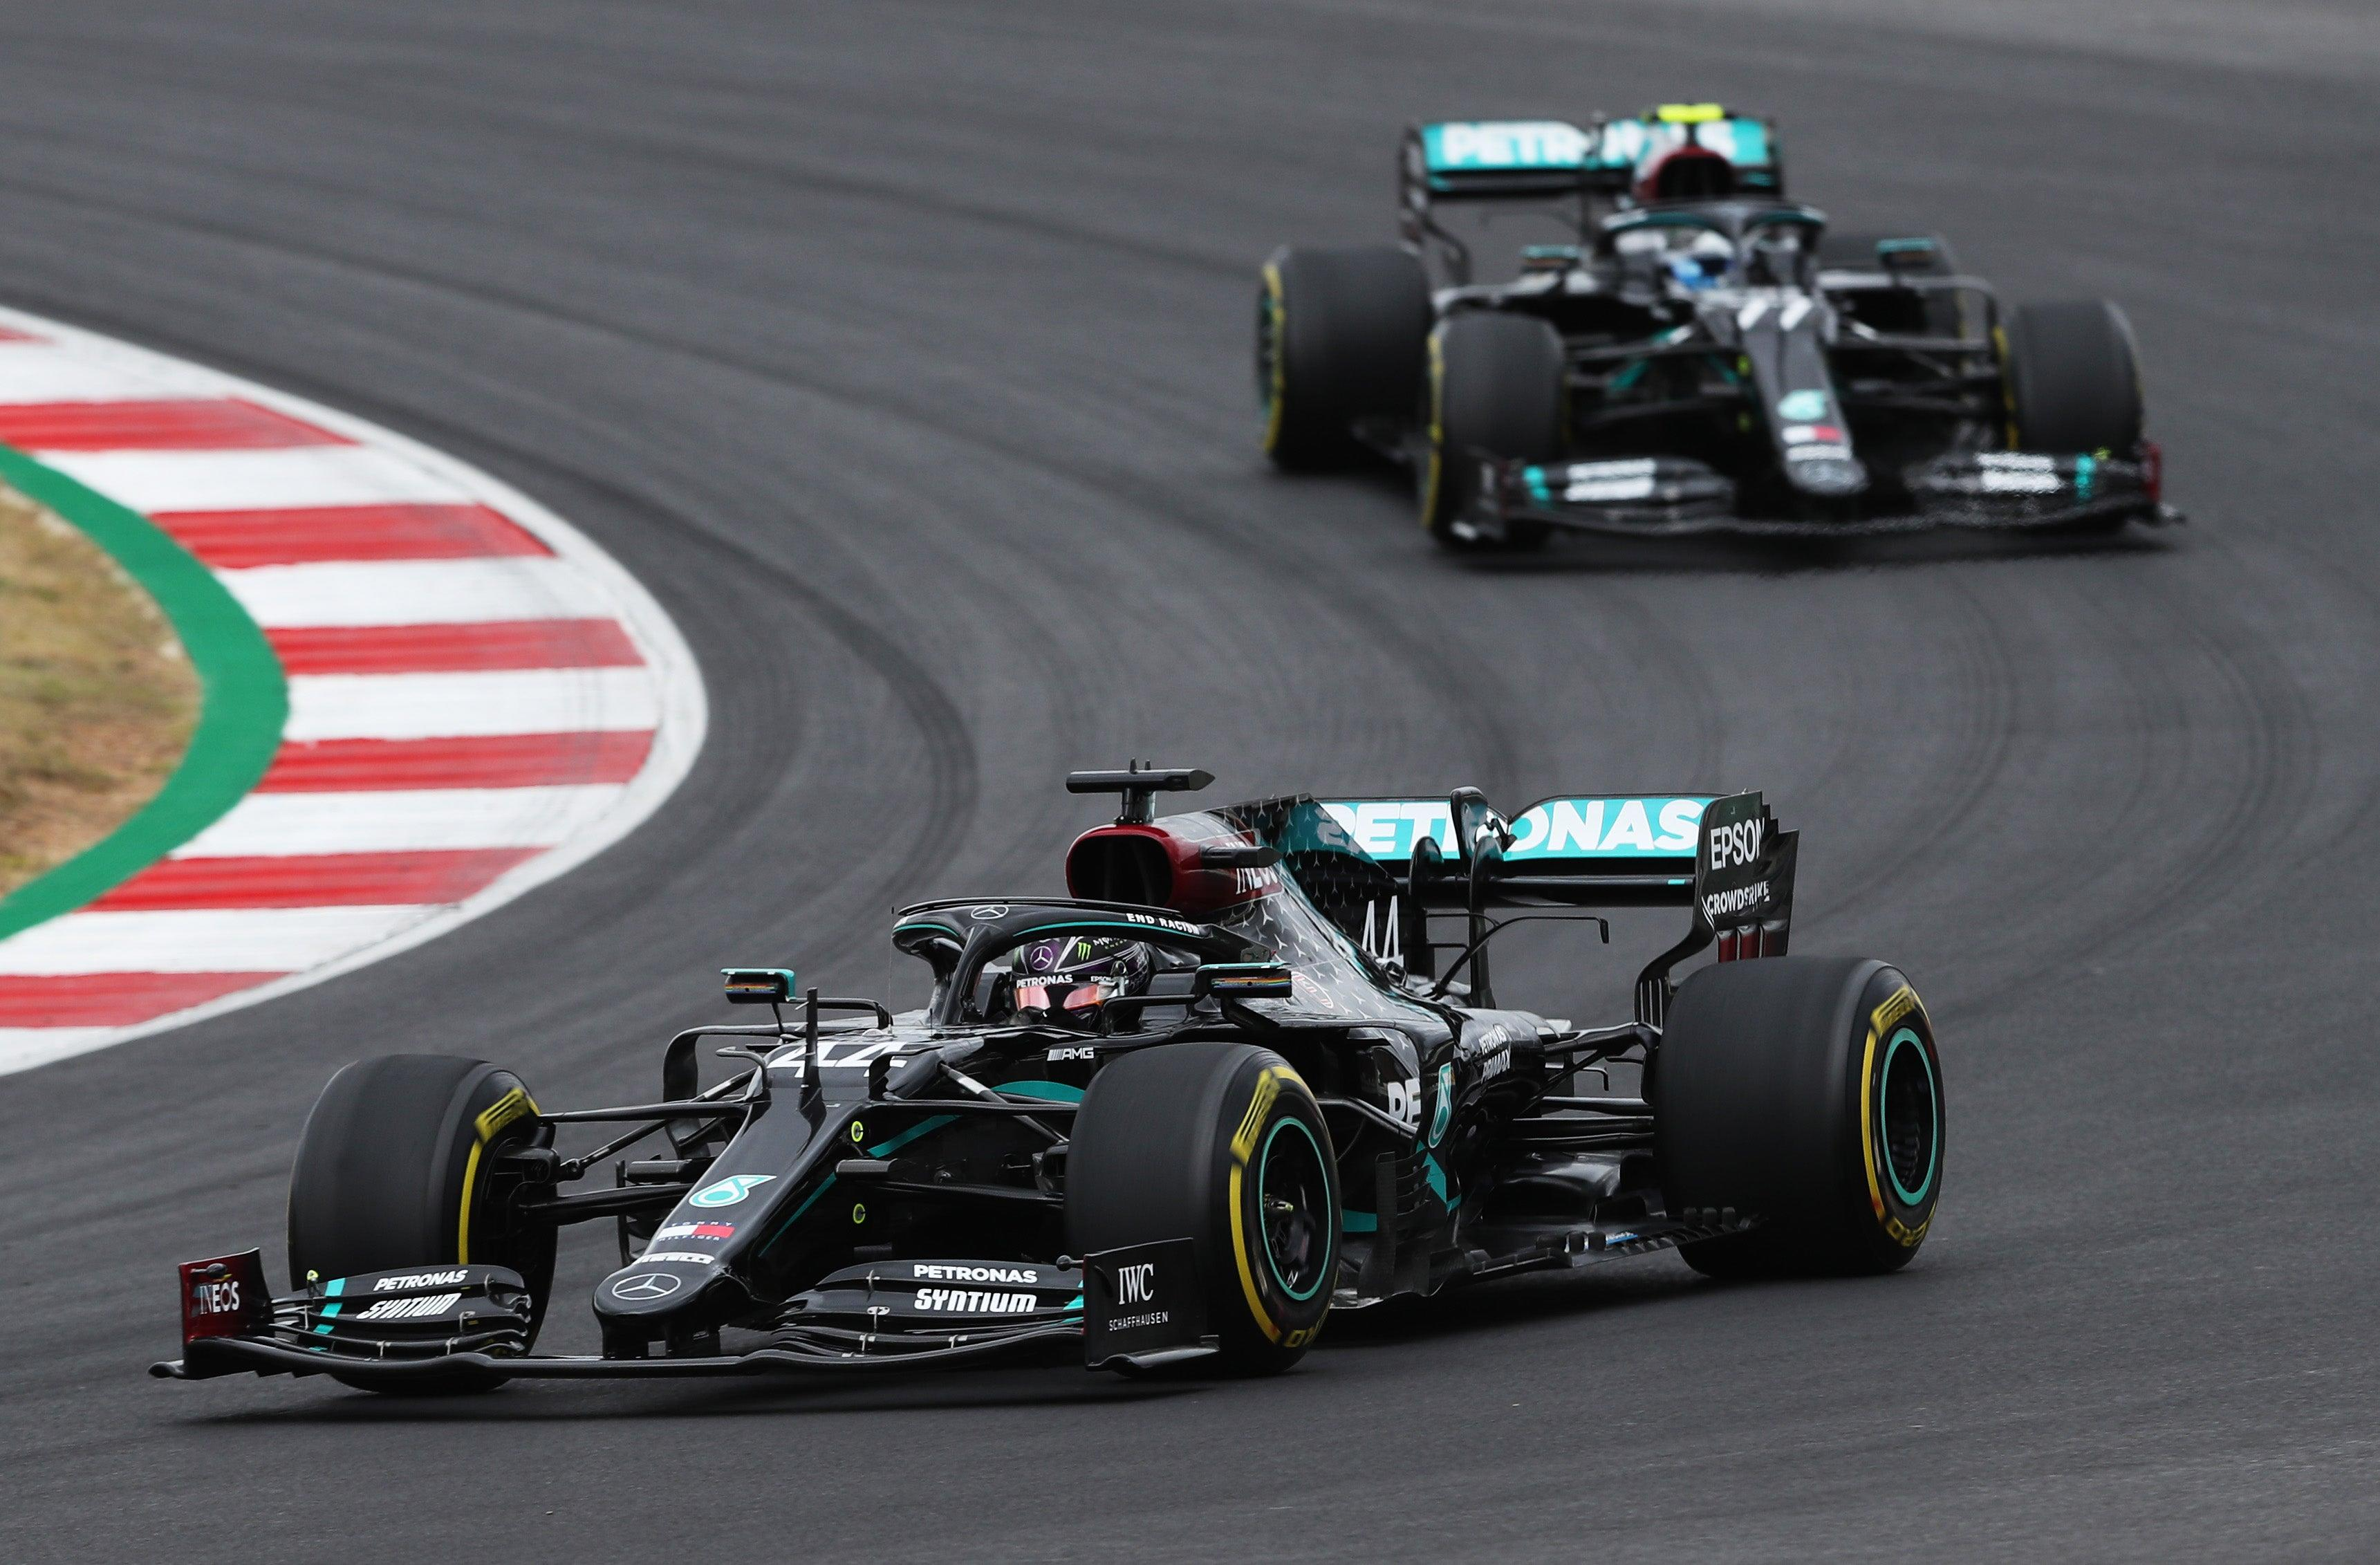 Portuguese Grand Prix LIVE: Latest updates from F1 as Hamilton retakes the lead from Bottas